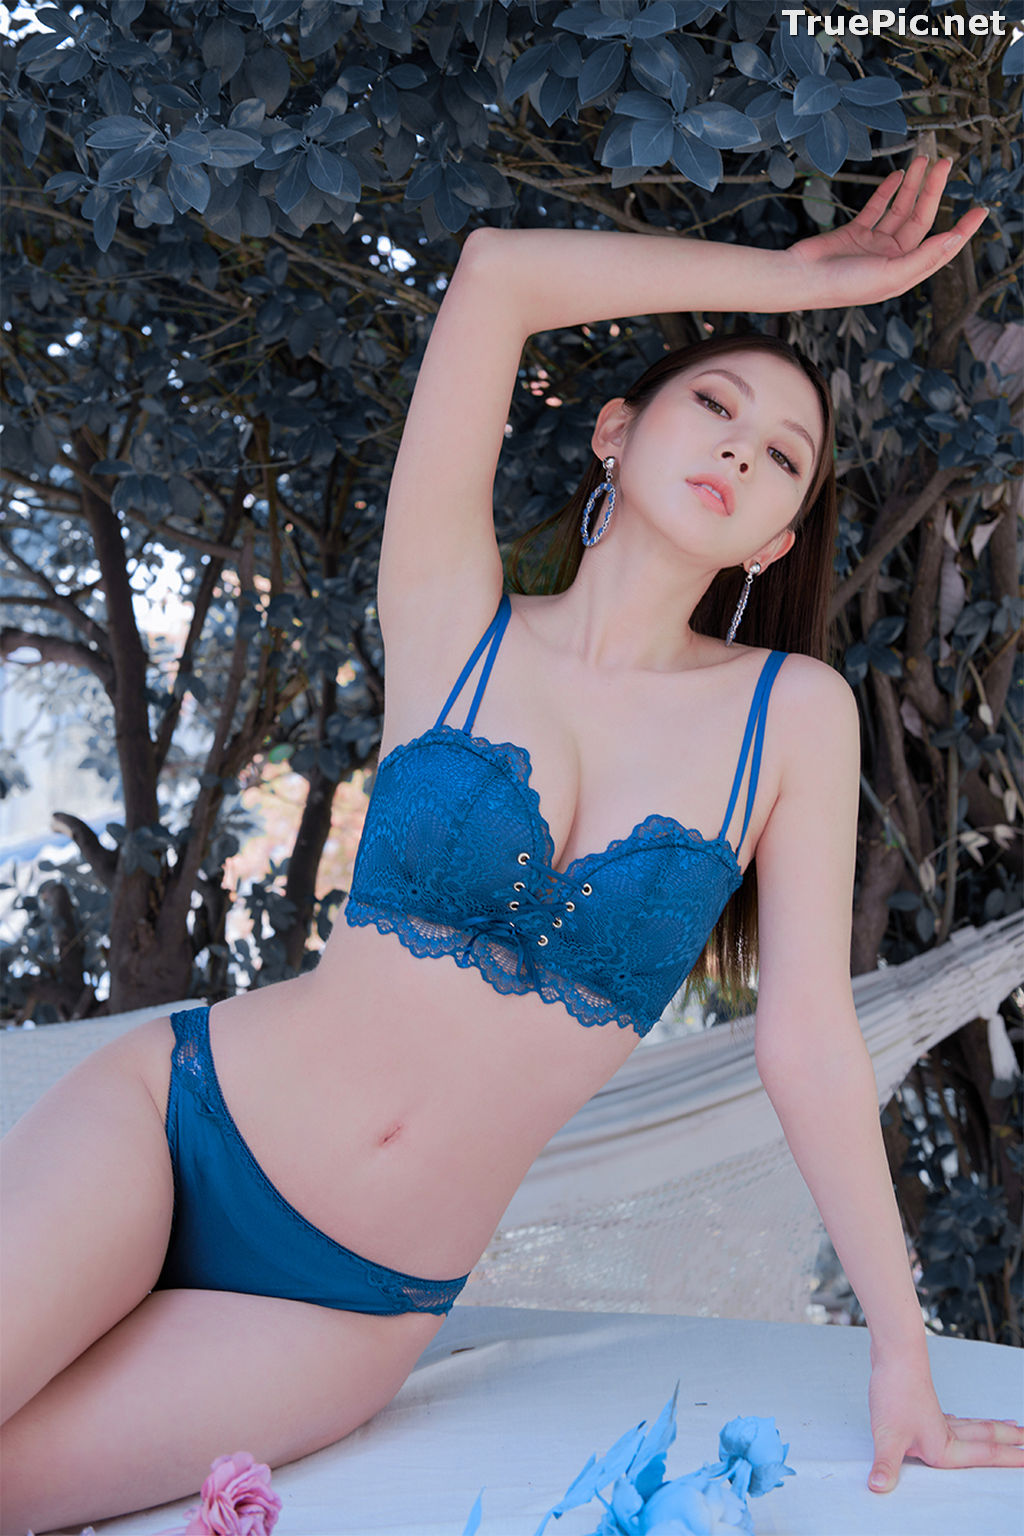 Image Korean Fashion Model – Lee Chae Eun (이채은) – Come On Vincent Lingerie #5 - TruePic.net - Picture-1